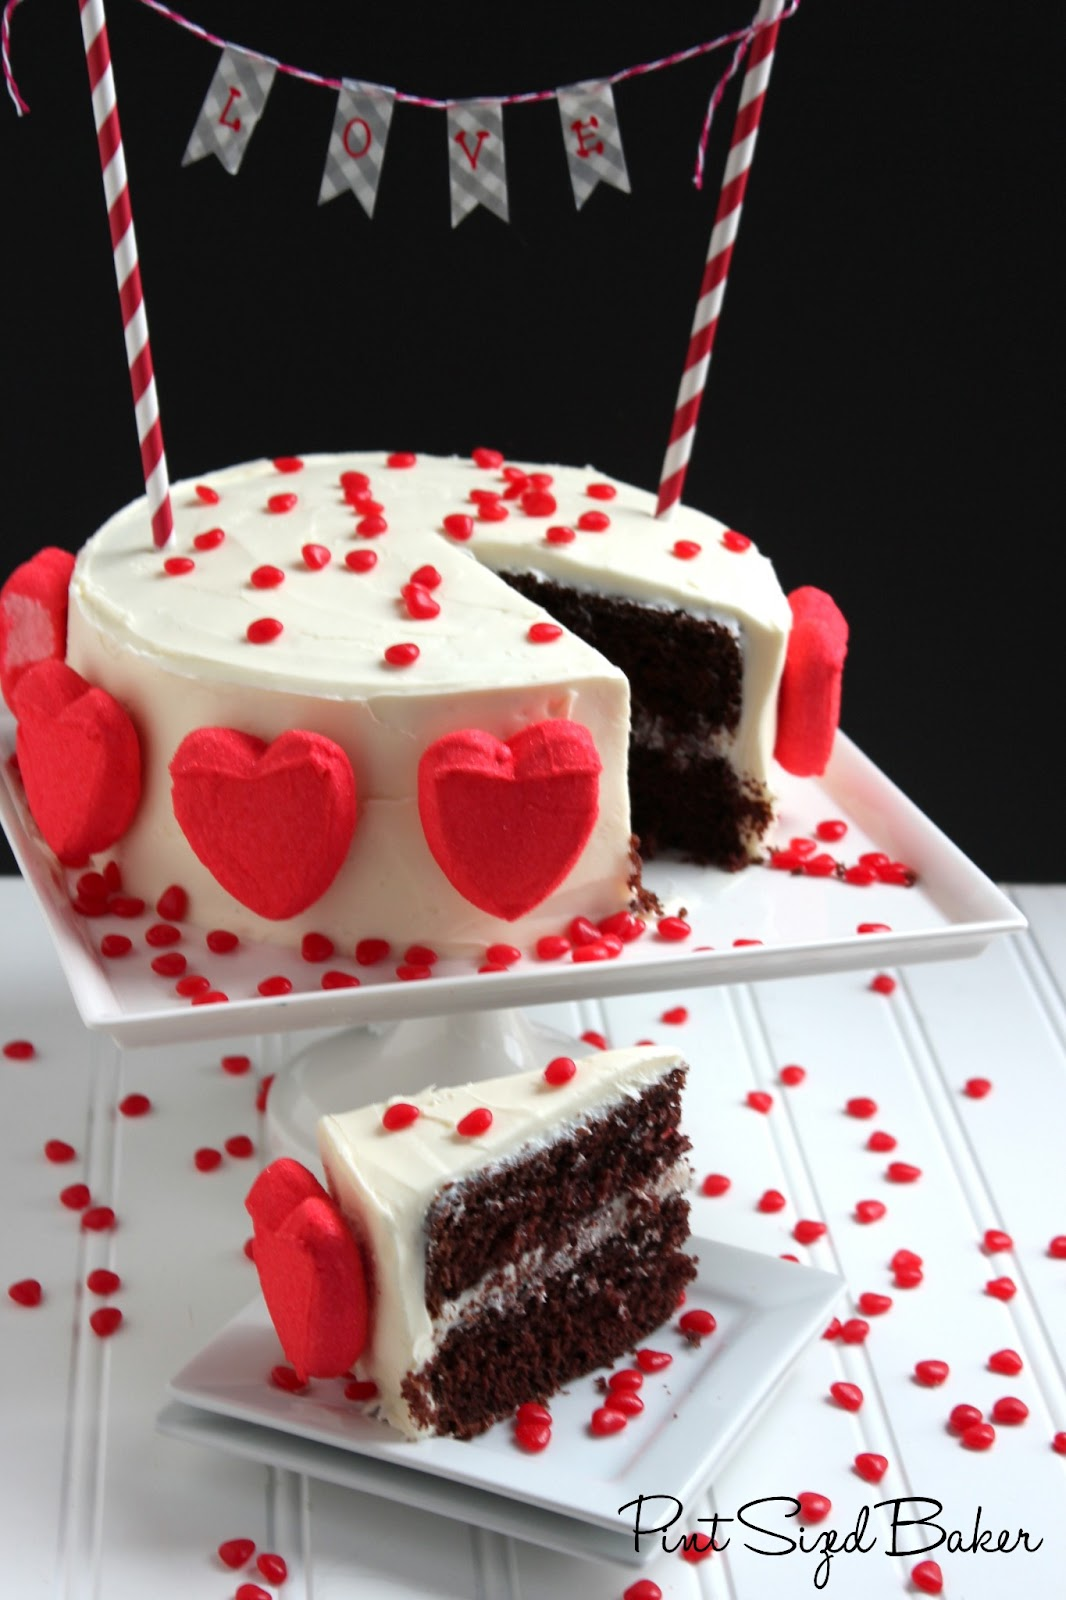 This Simple Yet Stunning Pretty Valentineu0027s Cake Is Perfect For Any Day Of  The Year That